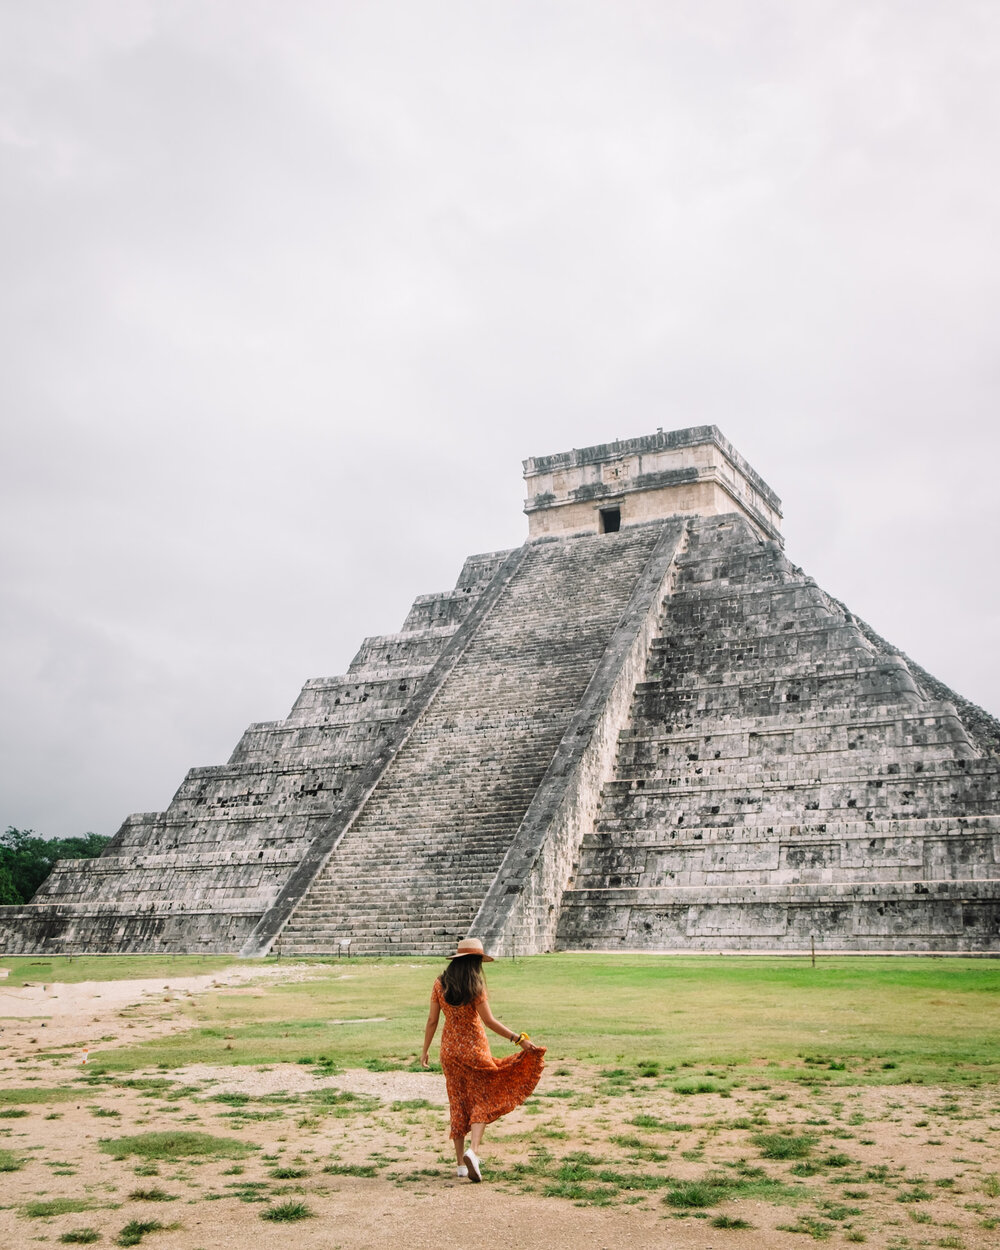 Rachel Off Duty: A Woman Stands in Front of the Kukulkan Pyramid at Chichen-Itza, Mexico